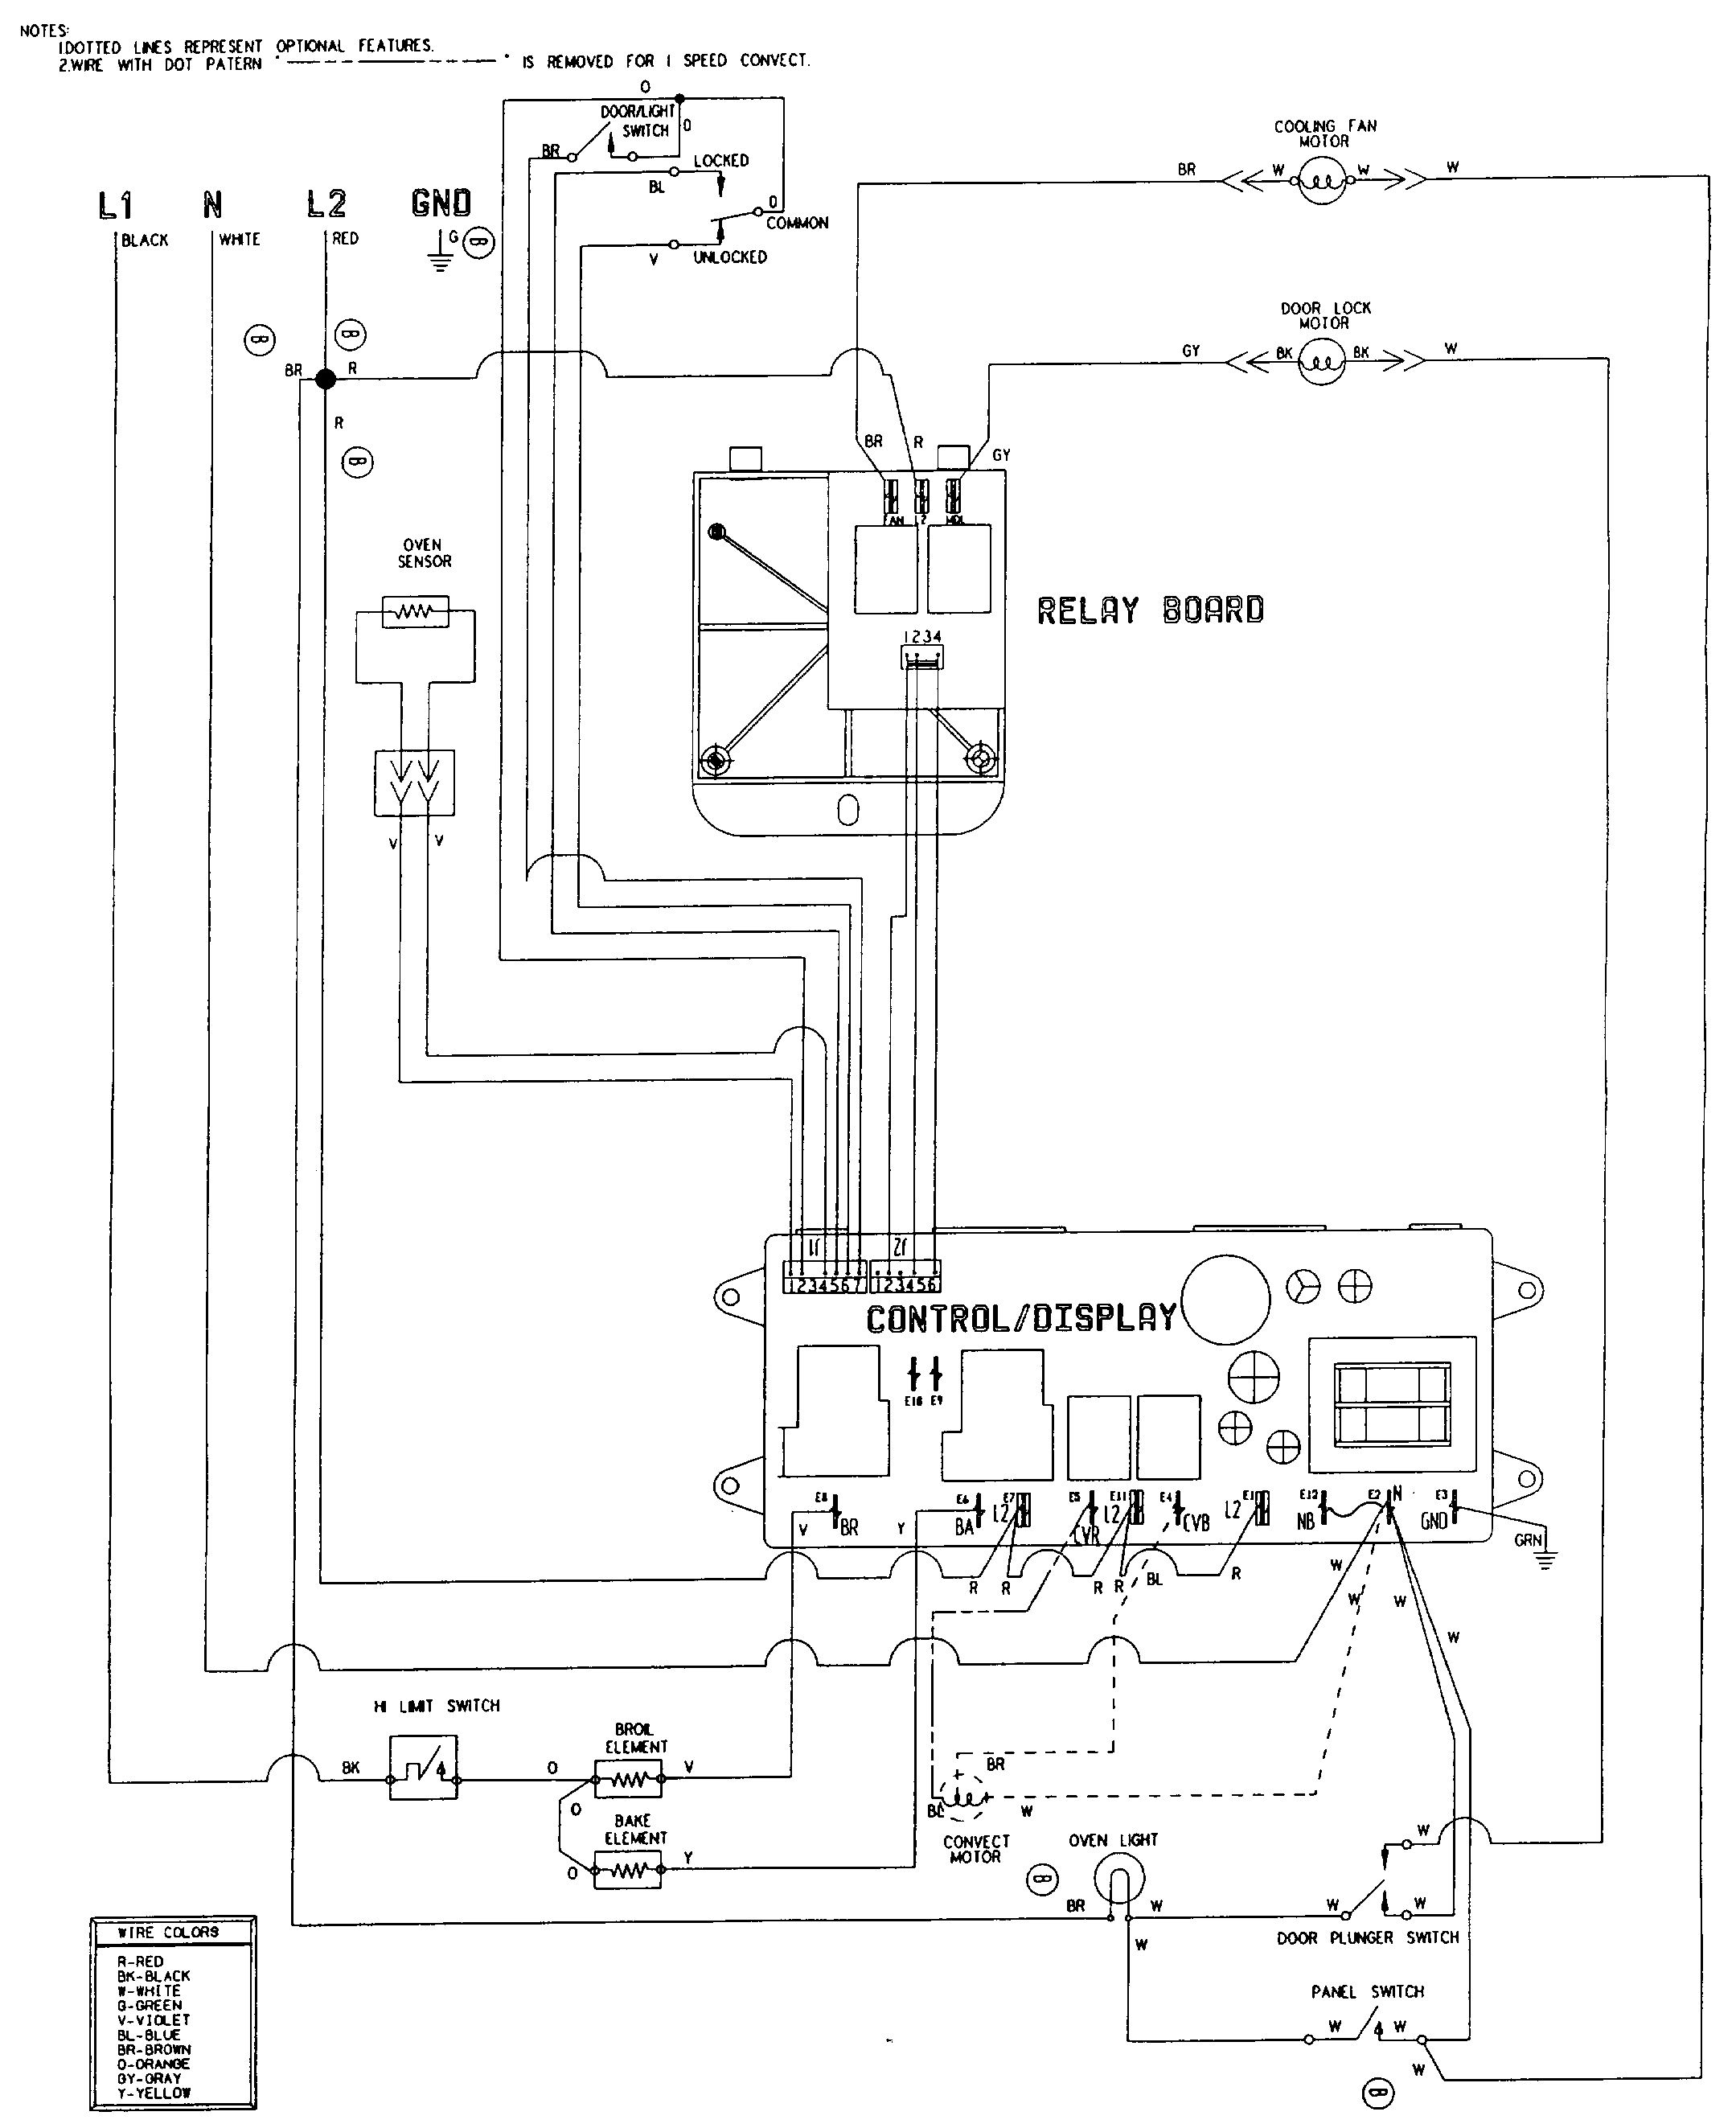 industrial oven wiring diagrams diagram base website wiring ...  jana-pinka.de